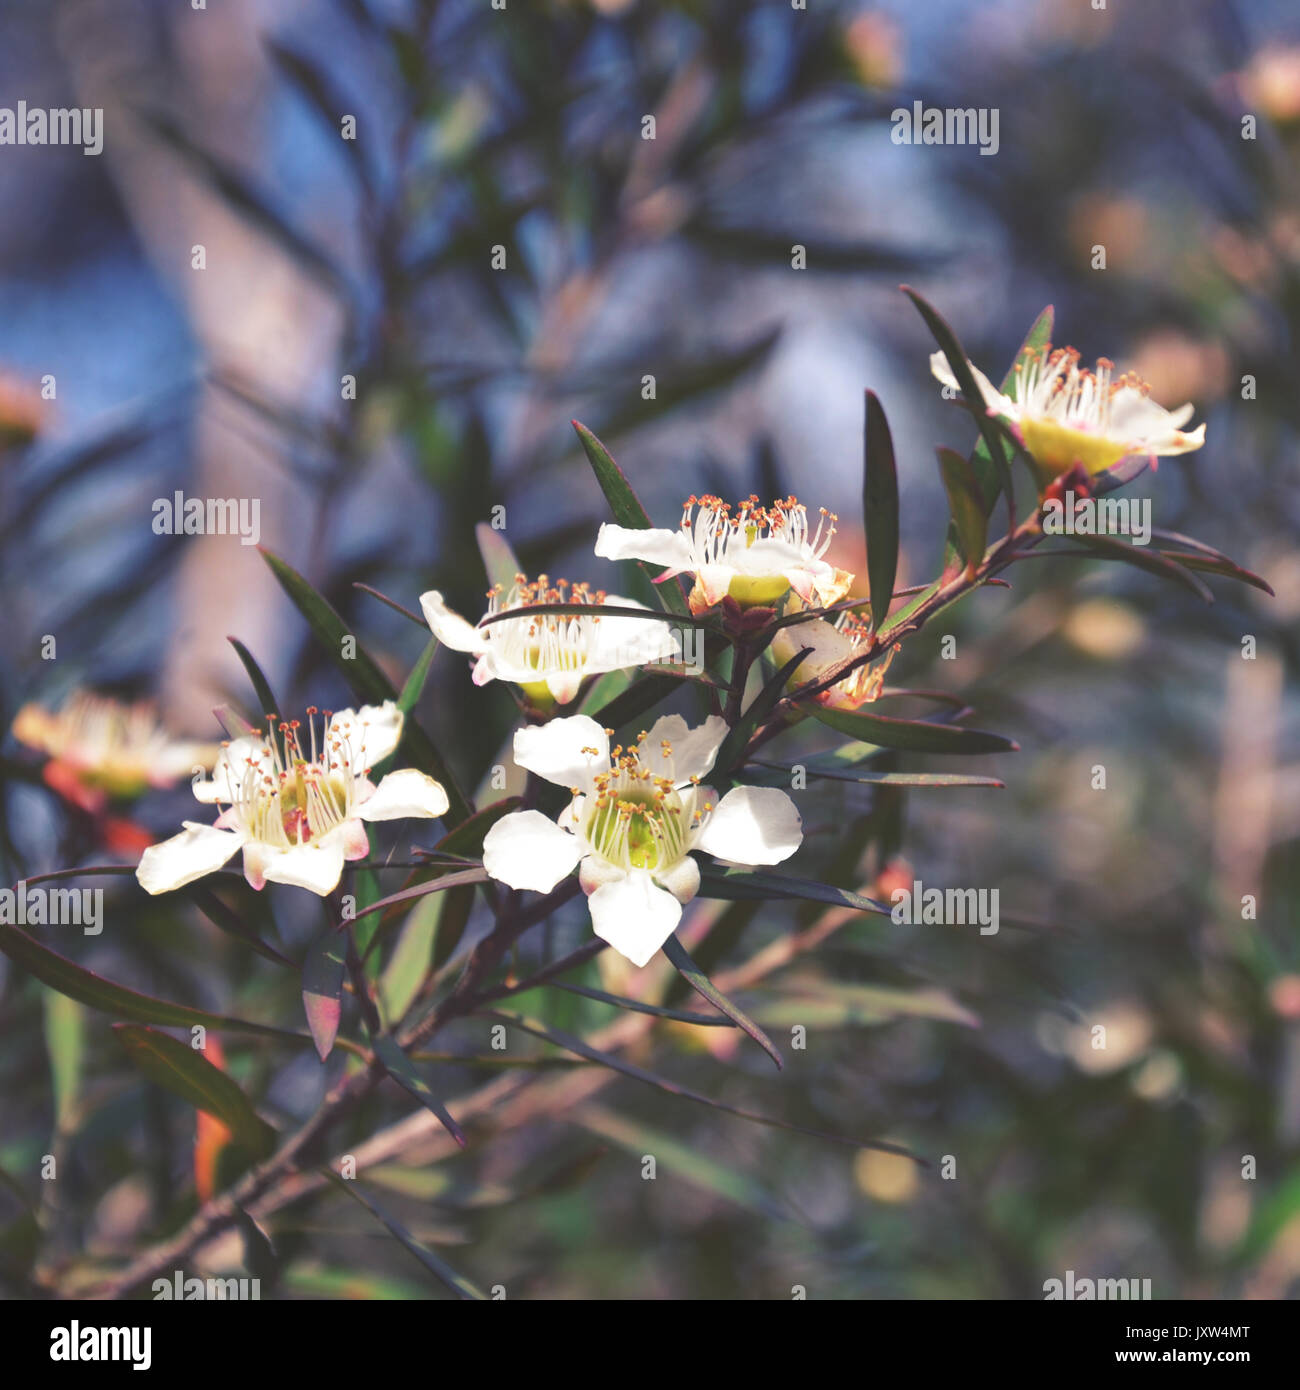 Australian Native Shade Plants: Australian Native Plant Stock Photos & Australian Native